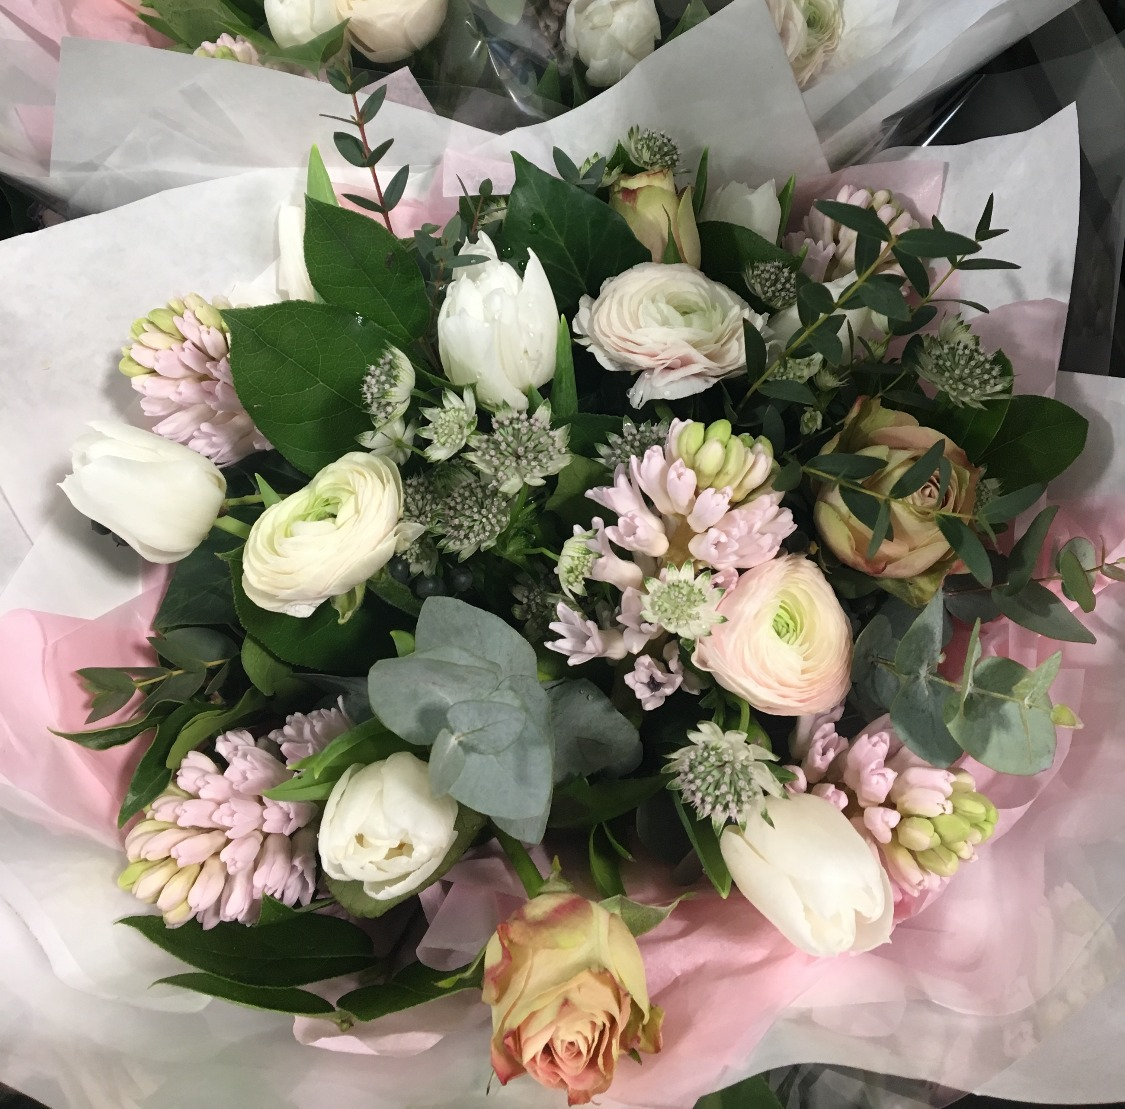 Beautiful Pictures Of Flowers Beautiful Flowers Award Winning Bespoke Florist In Worcester